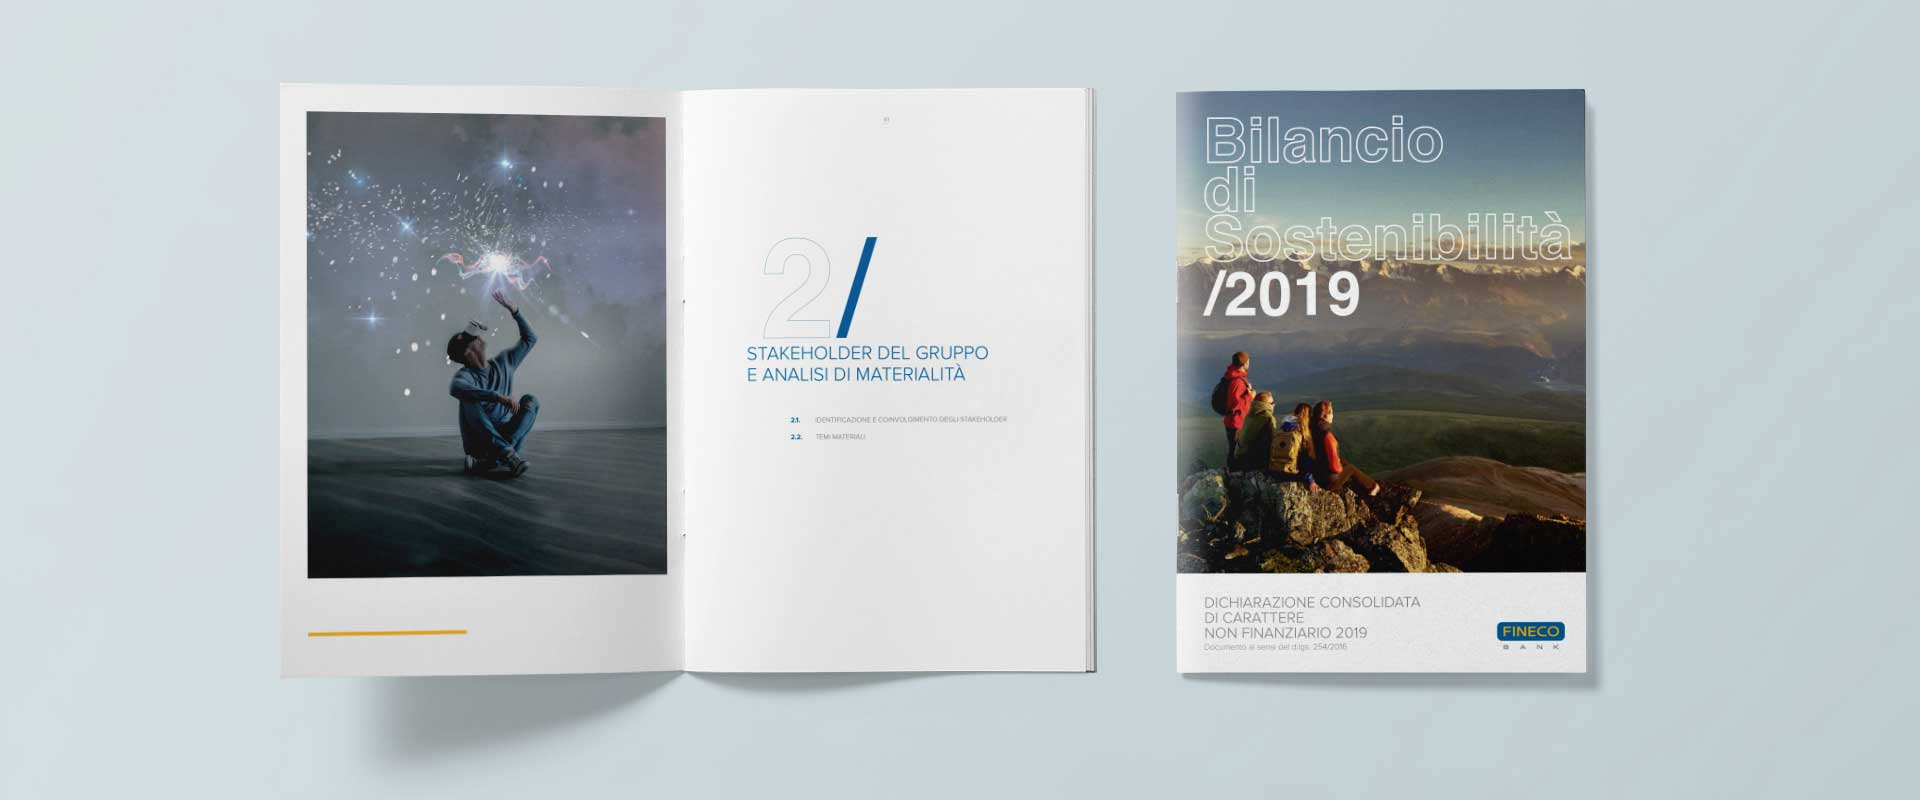 ATC - All Things Communicate graphic restyling of the Fineco Group's 2019 Sustainability report